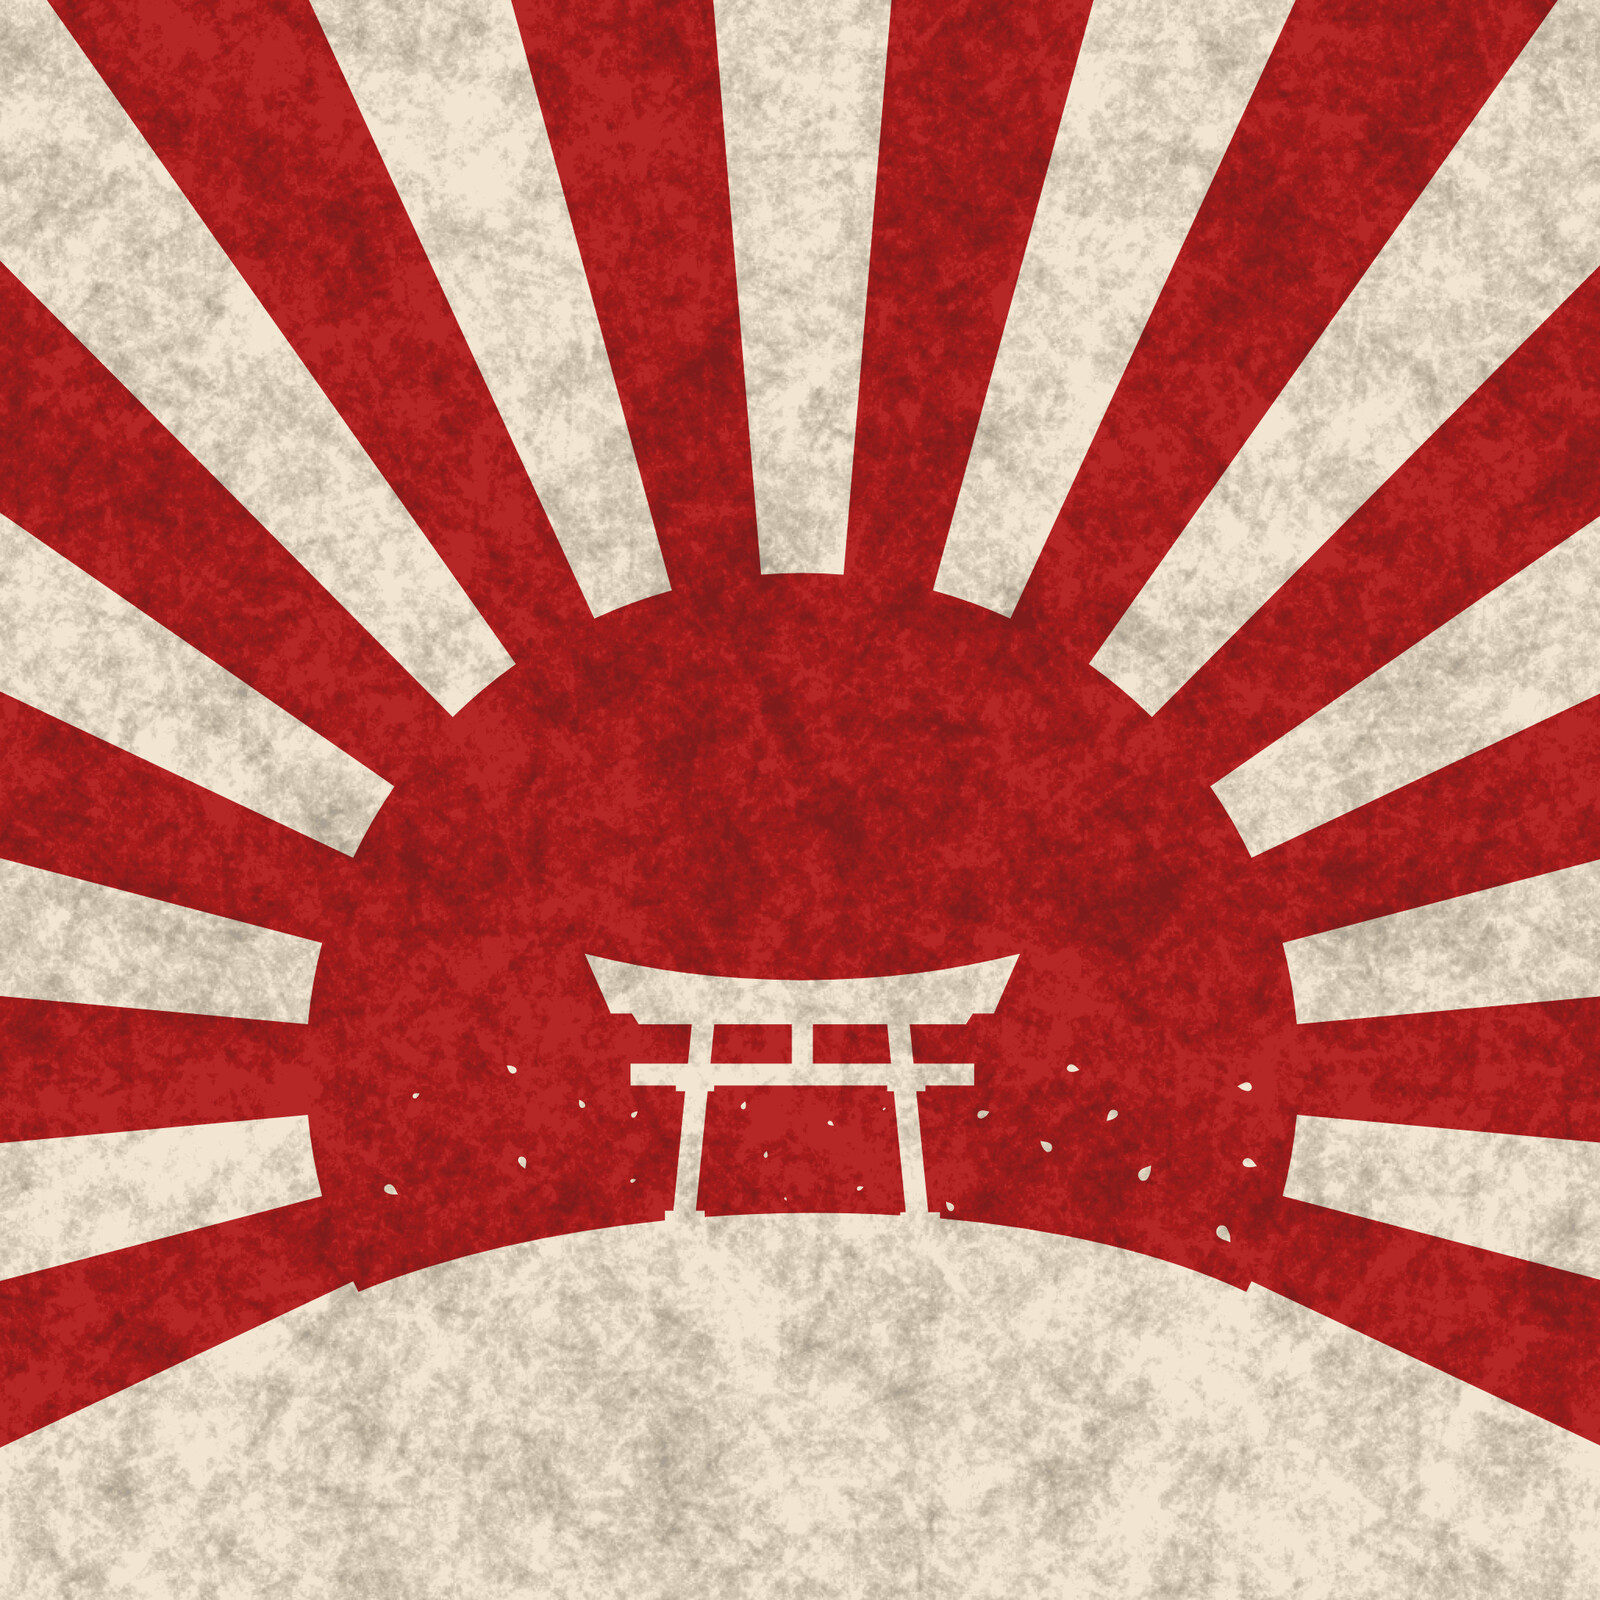 Shinto - 2D vector art made in Affinity